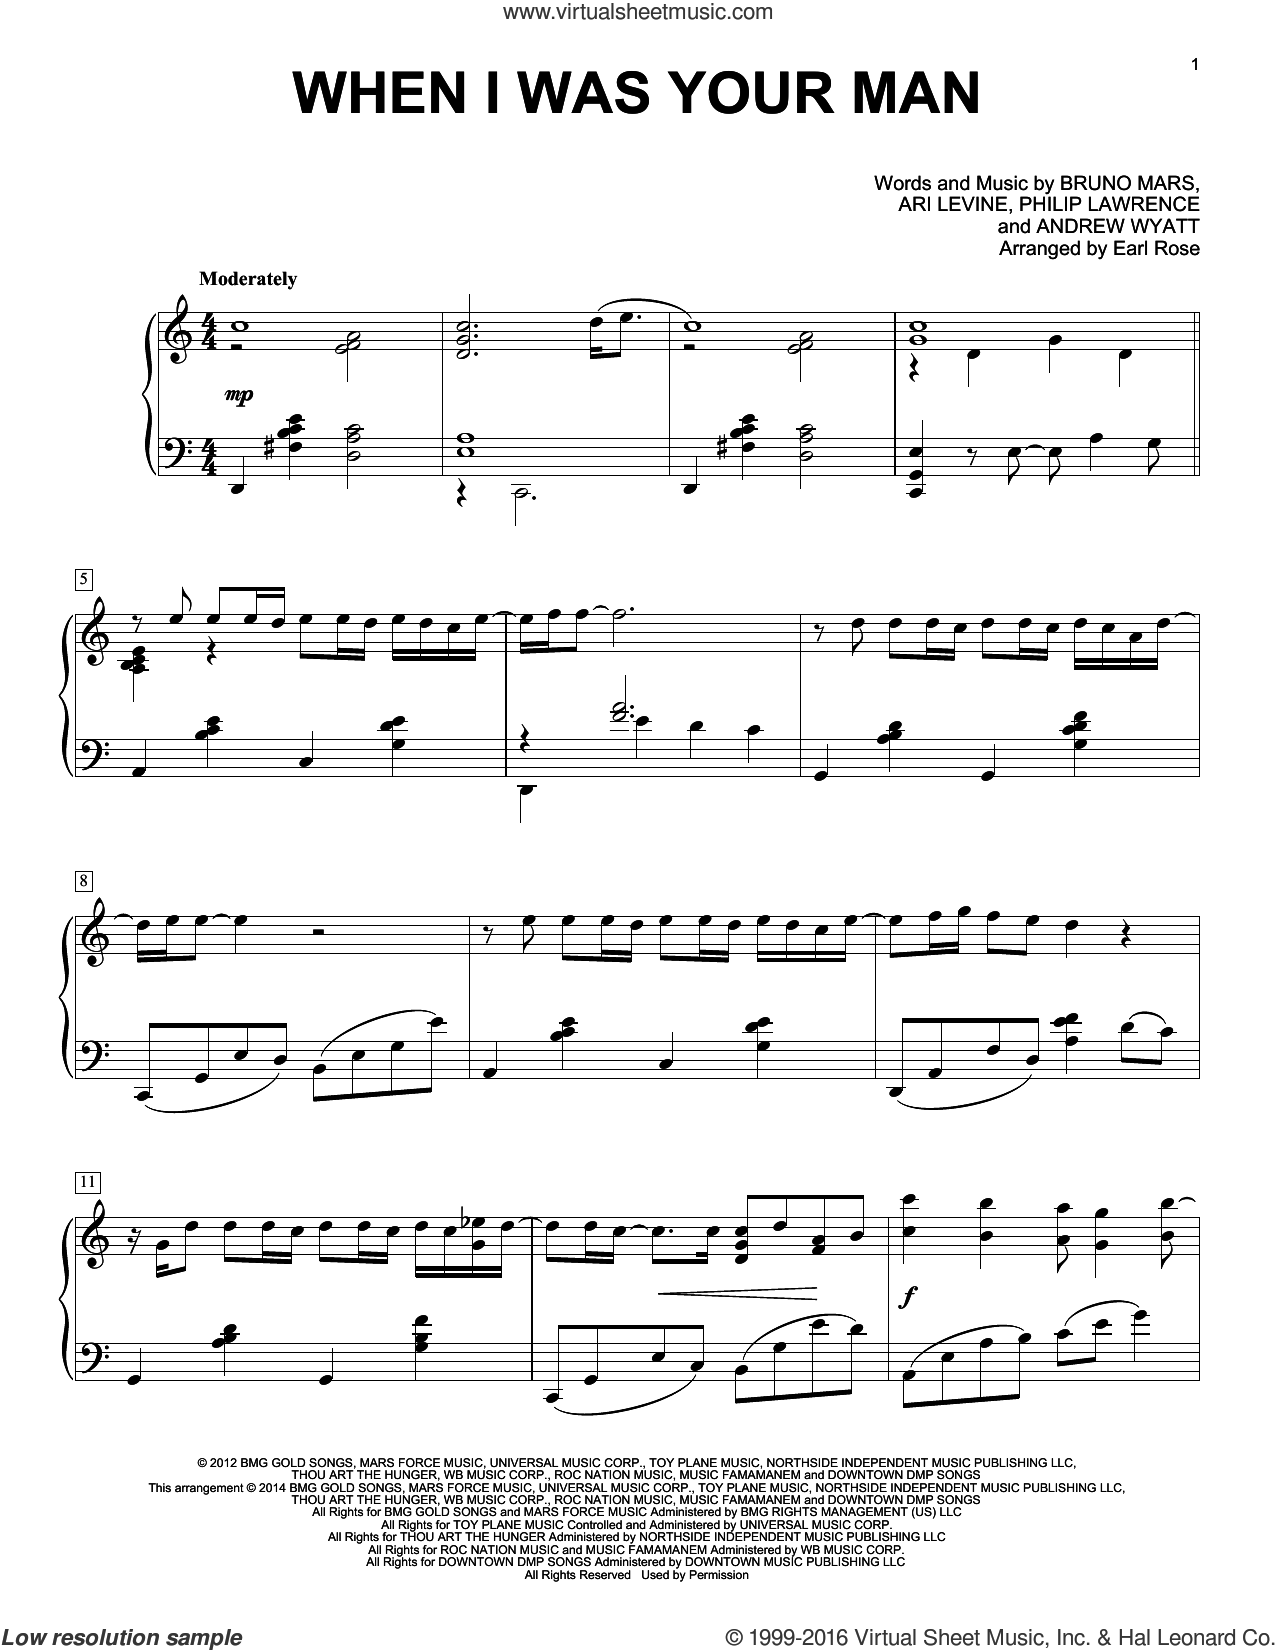 When I Was Your Man sheet music for piano solo by Philip Lawrence, Earl Rose, Andrew Wyatt, Ari Levine and Bruno Mars. Score Image Preview.